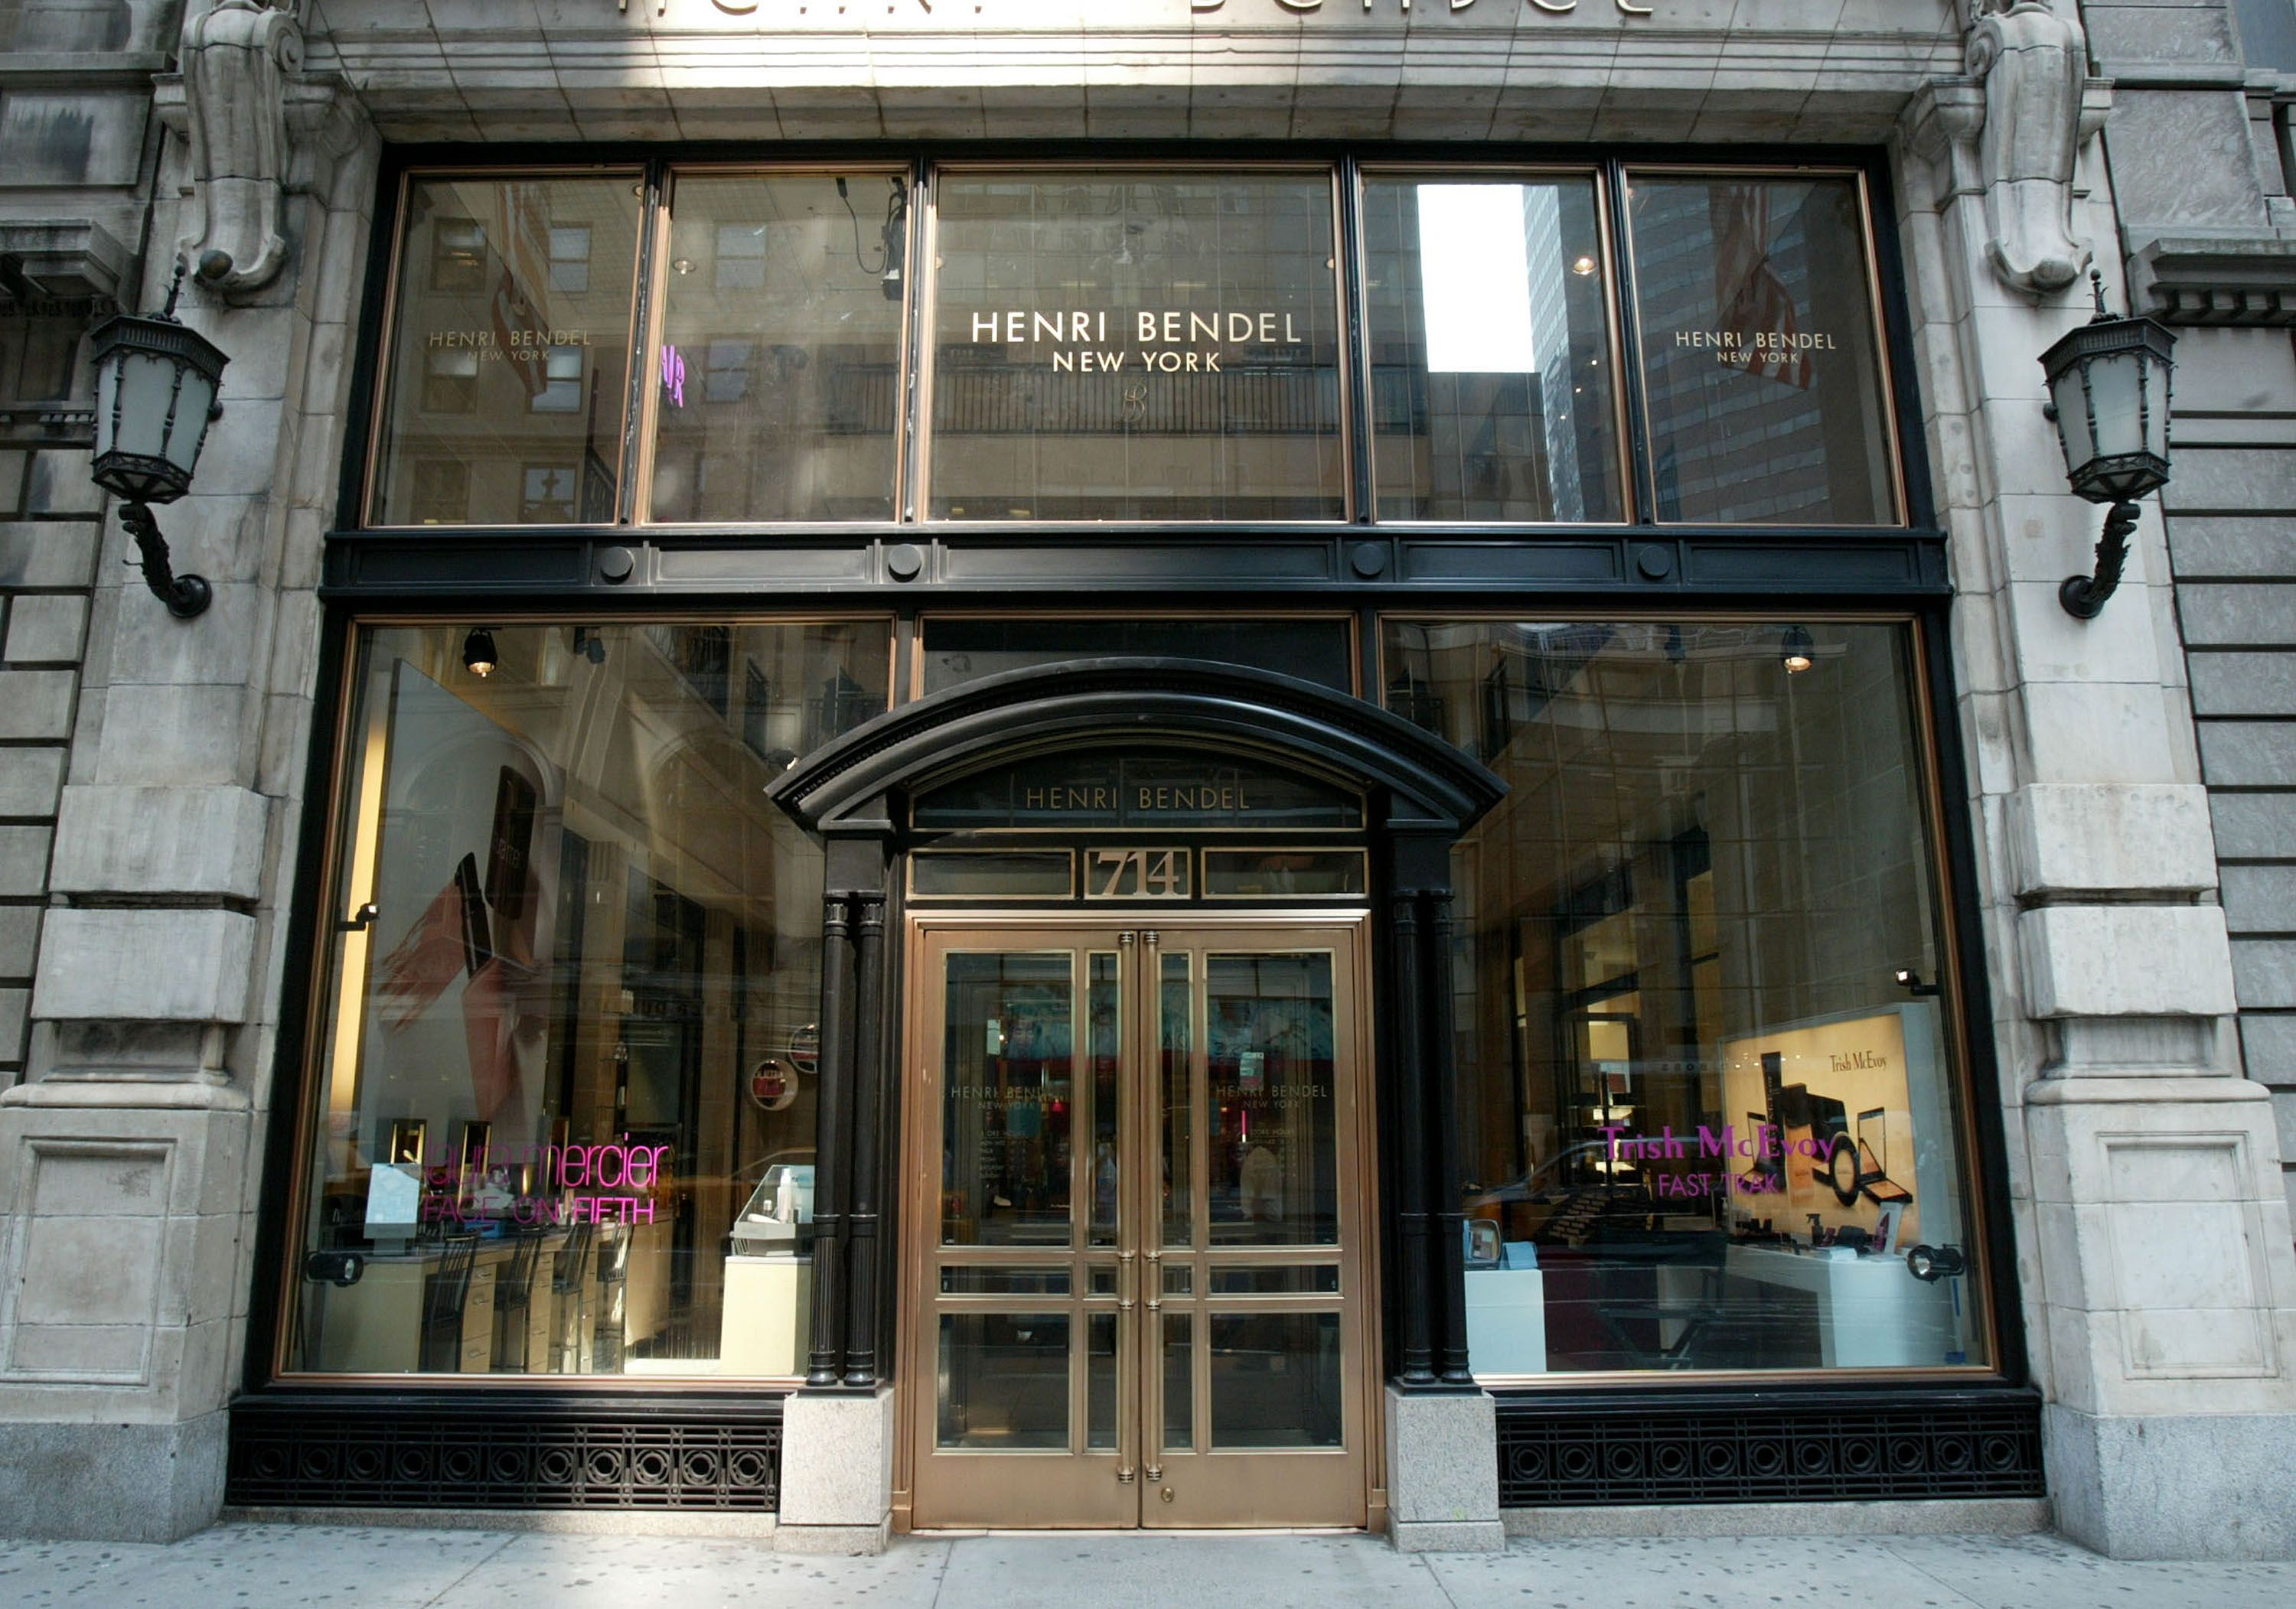 Shoppers Mourn the End of Henri Bendel, Which Is Closing After 123 Years